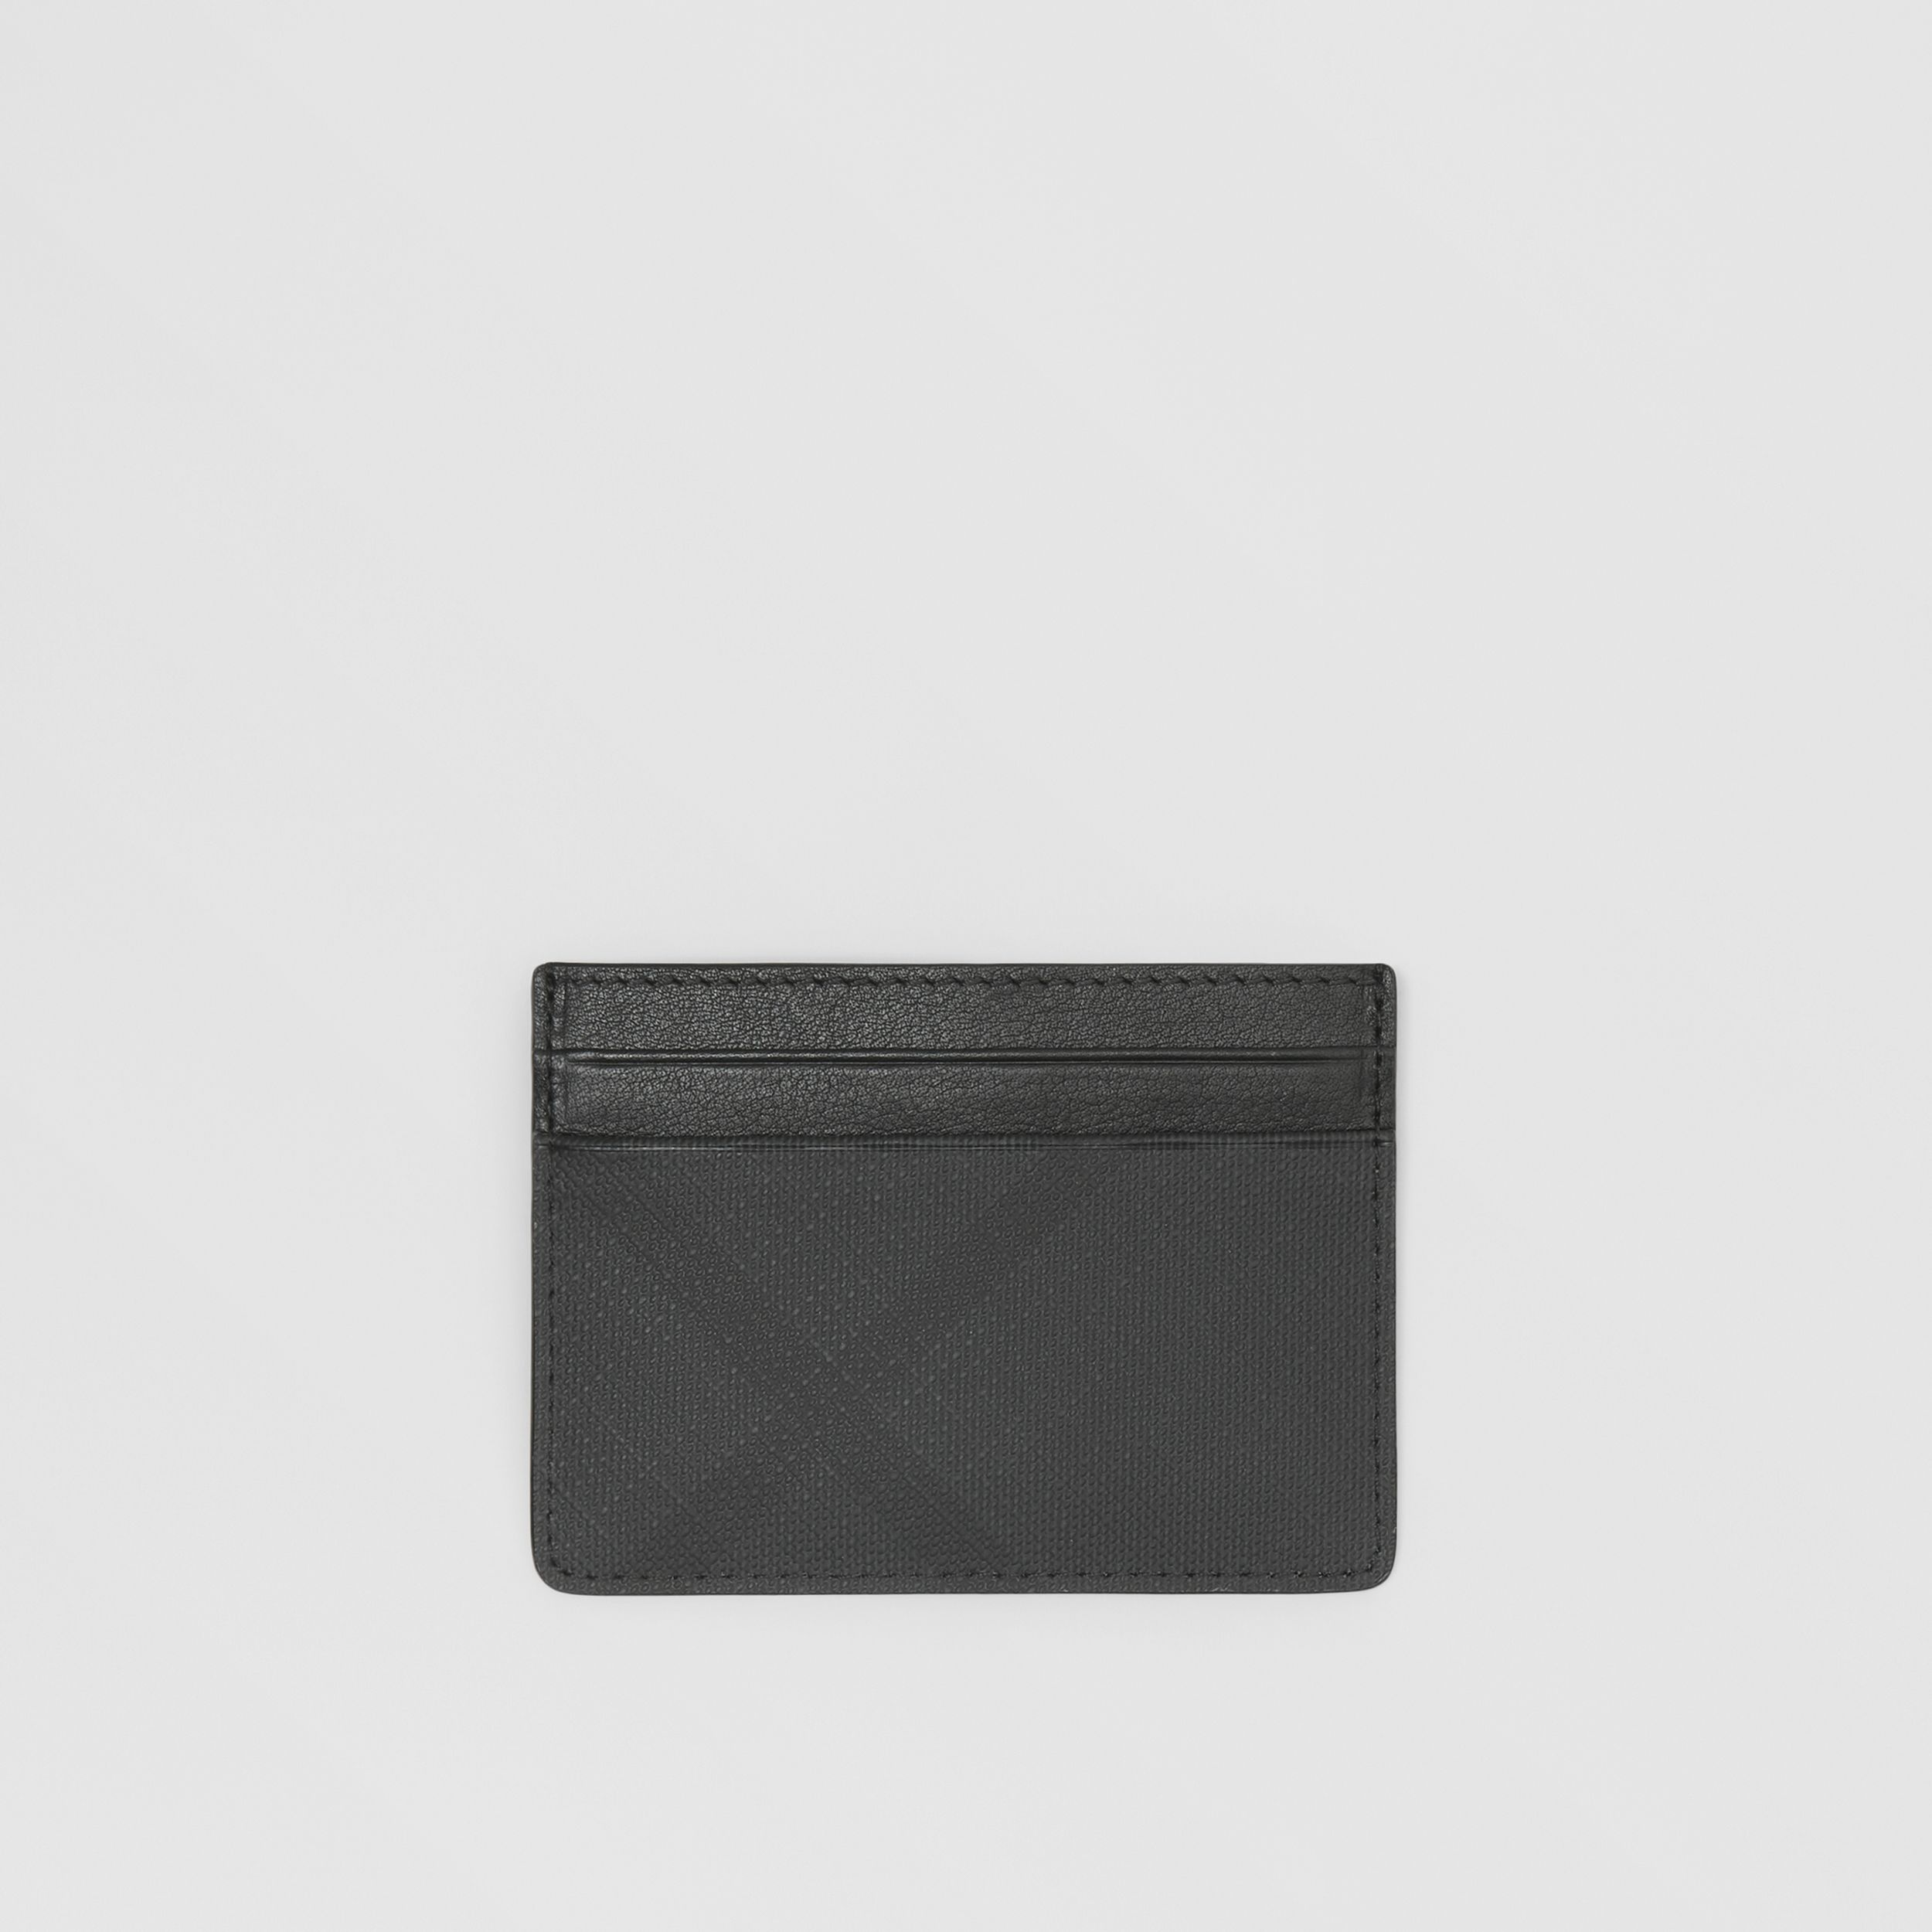 London Check and Leather Card Case in Dark Charcoal - Men | Burberry - 1